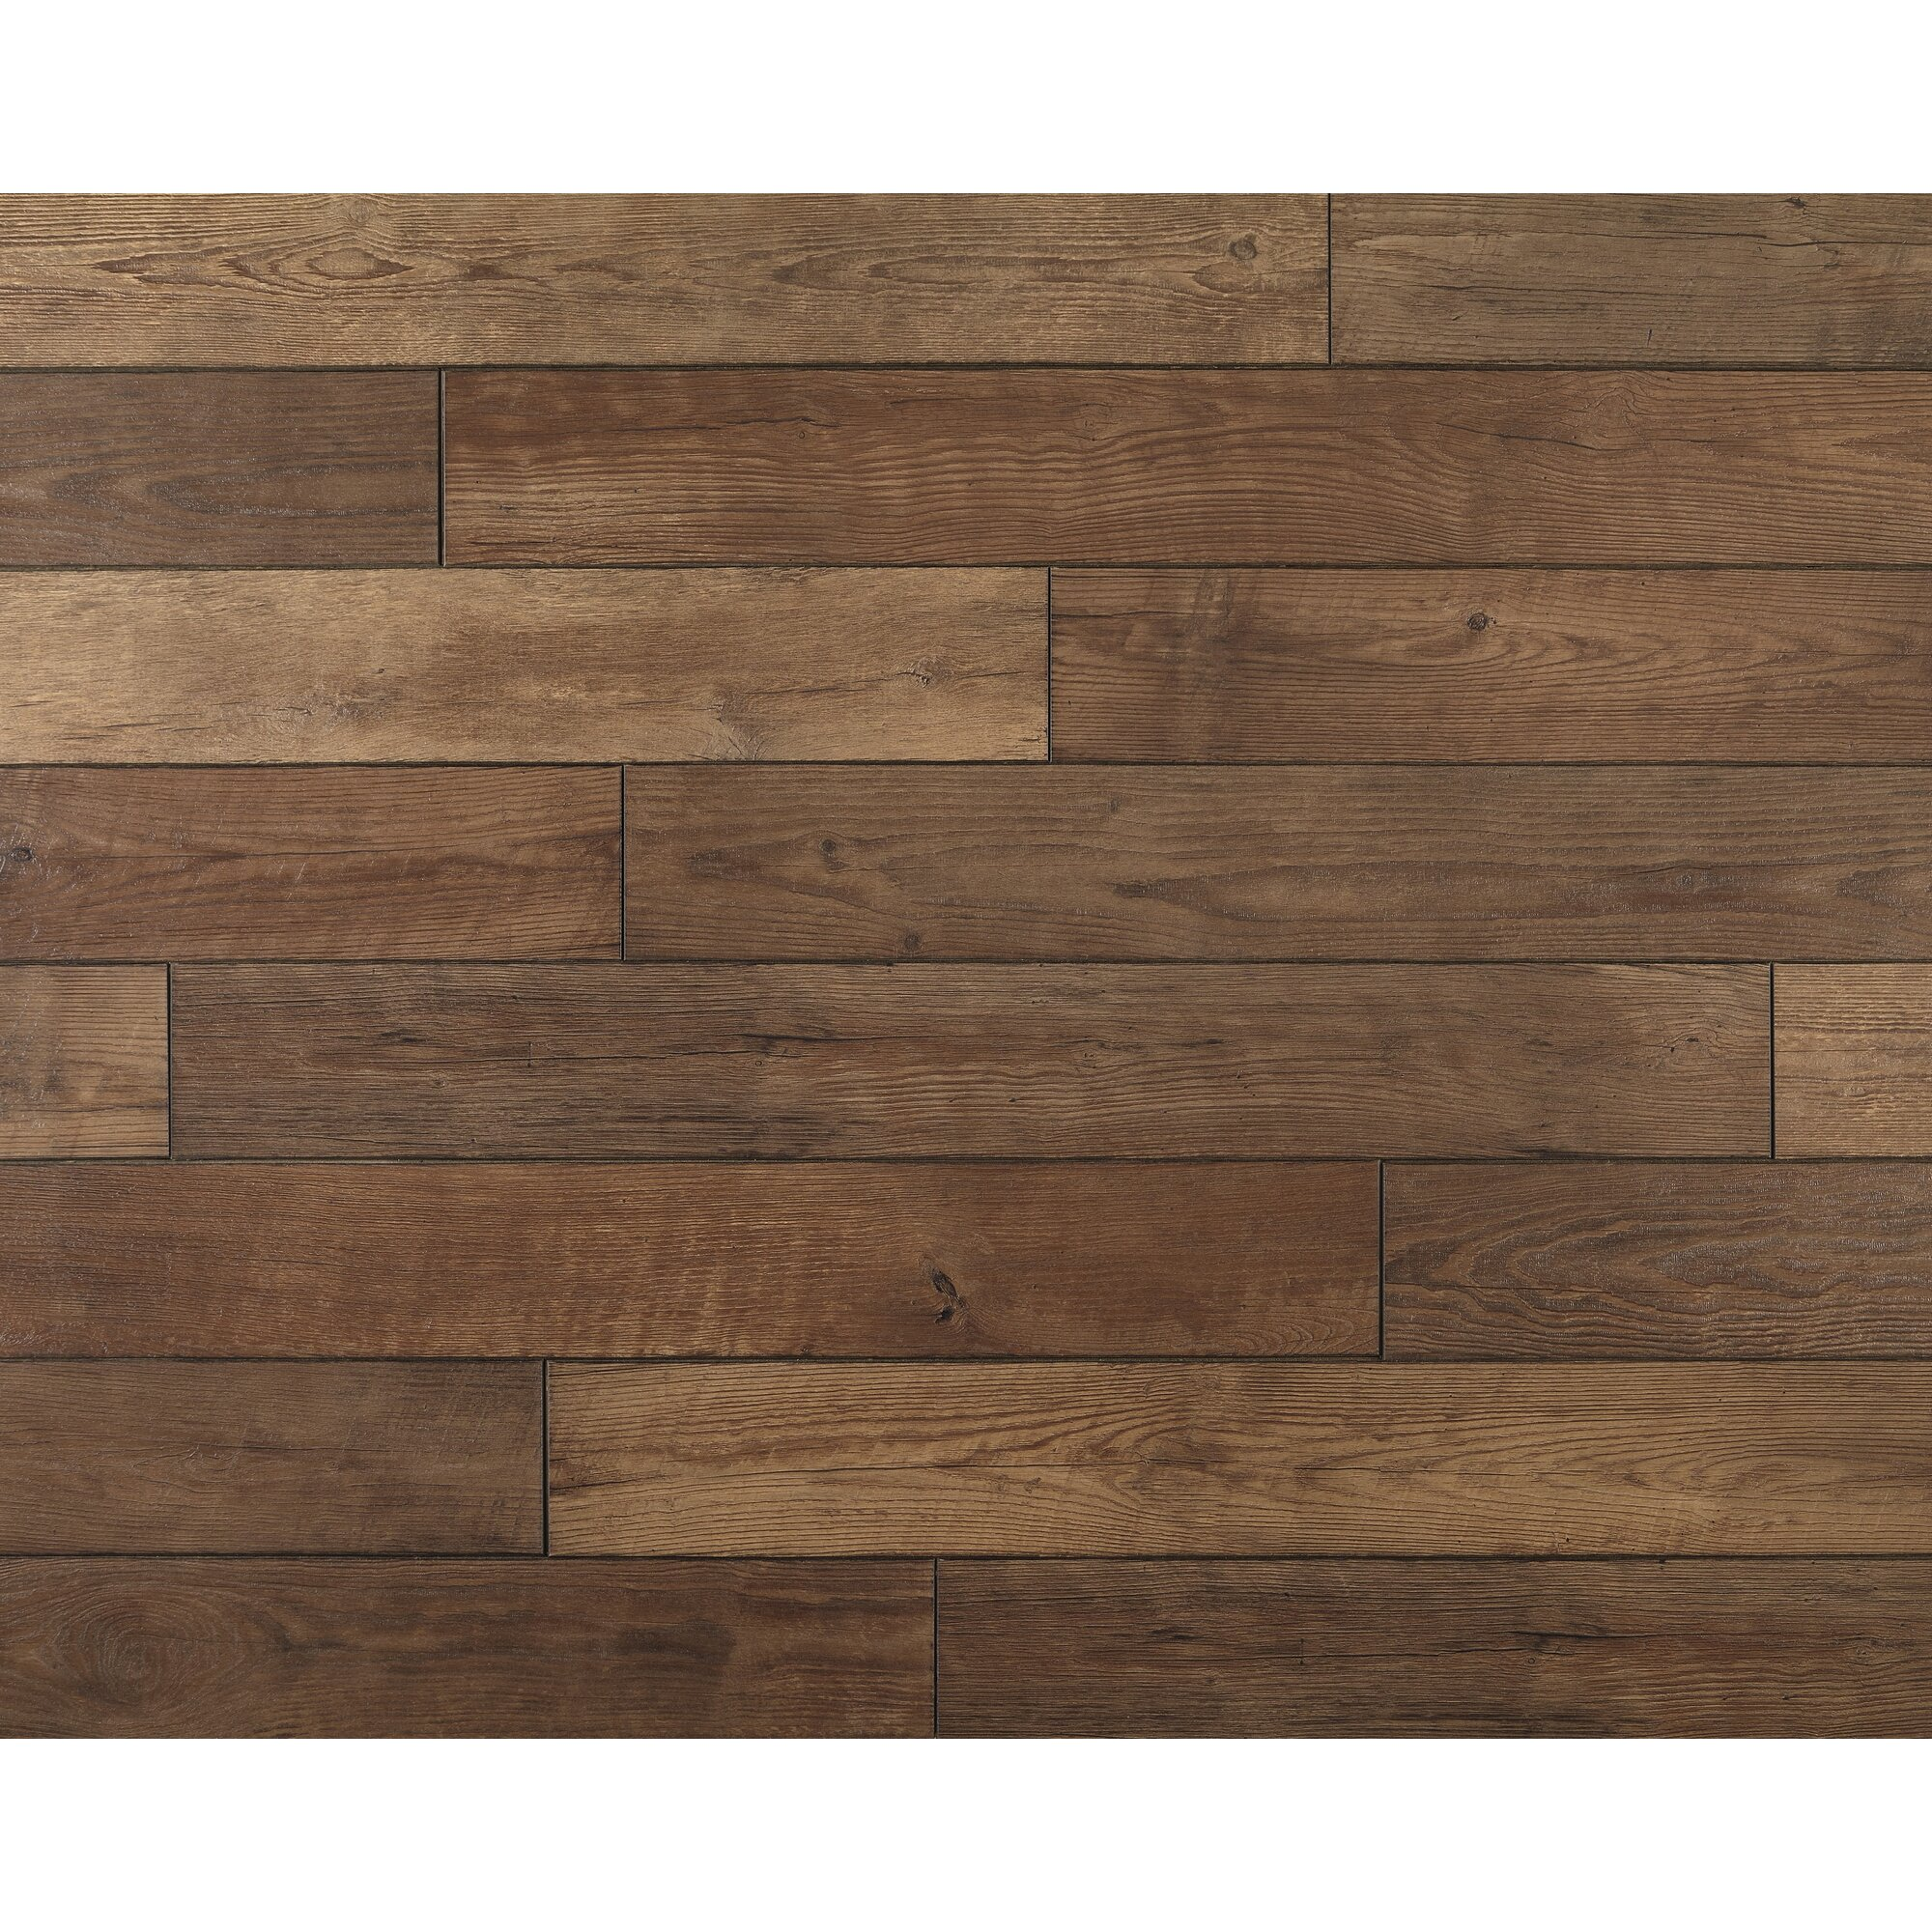 Oak Laminate Flooring can i use this floor in my bathroom if im doing the whole house in this floor Restoration 6 X 51 X 12mm Treeline Oak Laminate